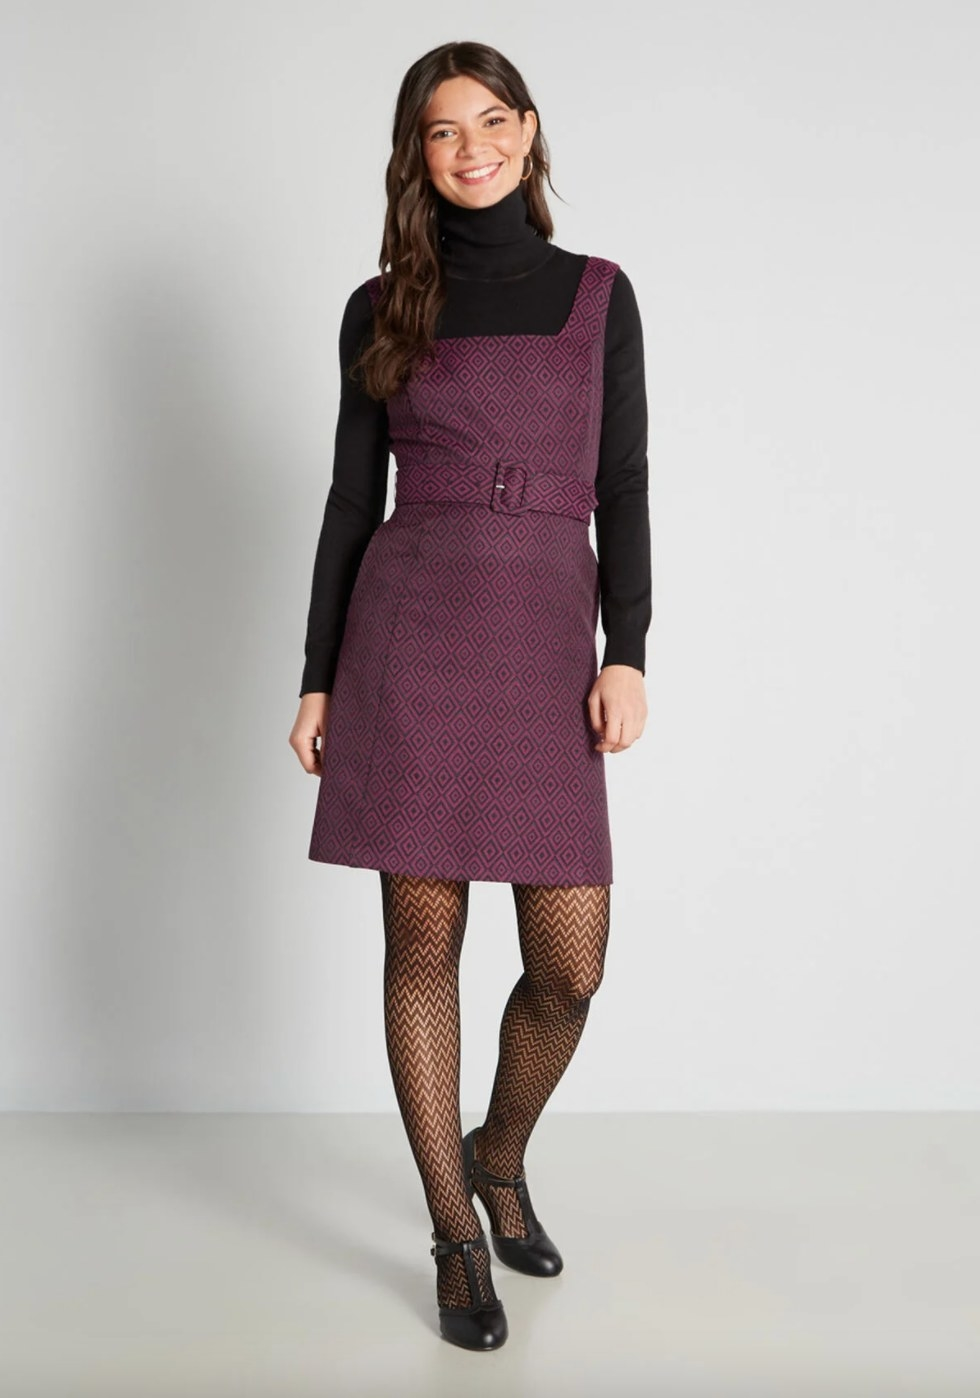 The fit and flare dress in purple on a model wearing patterened stockings